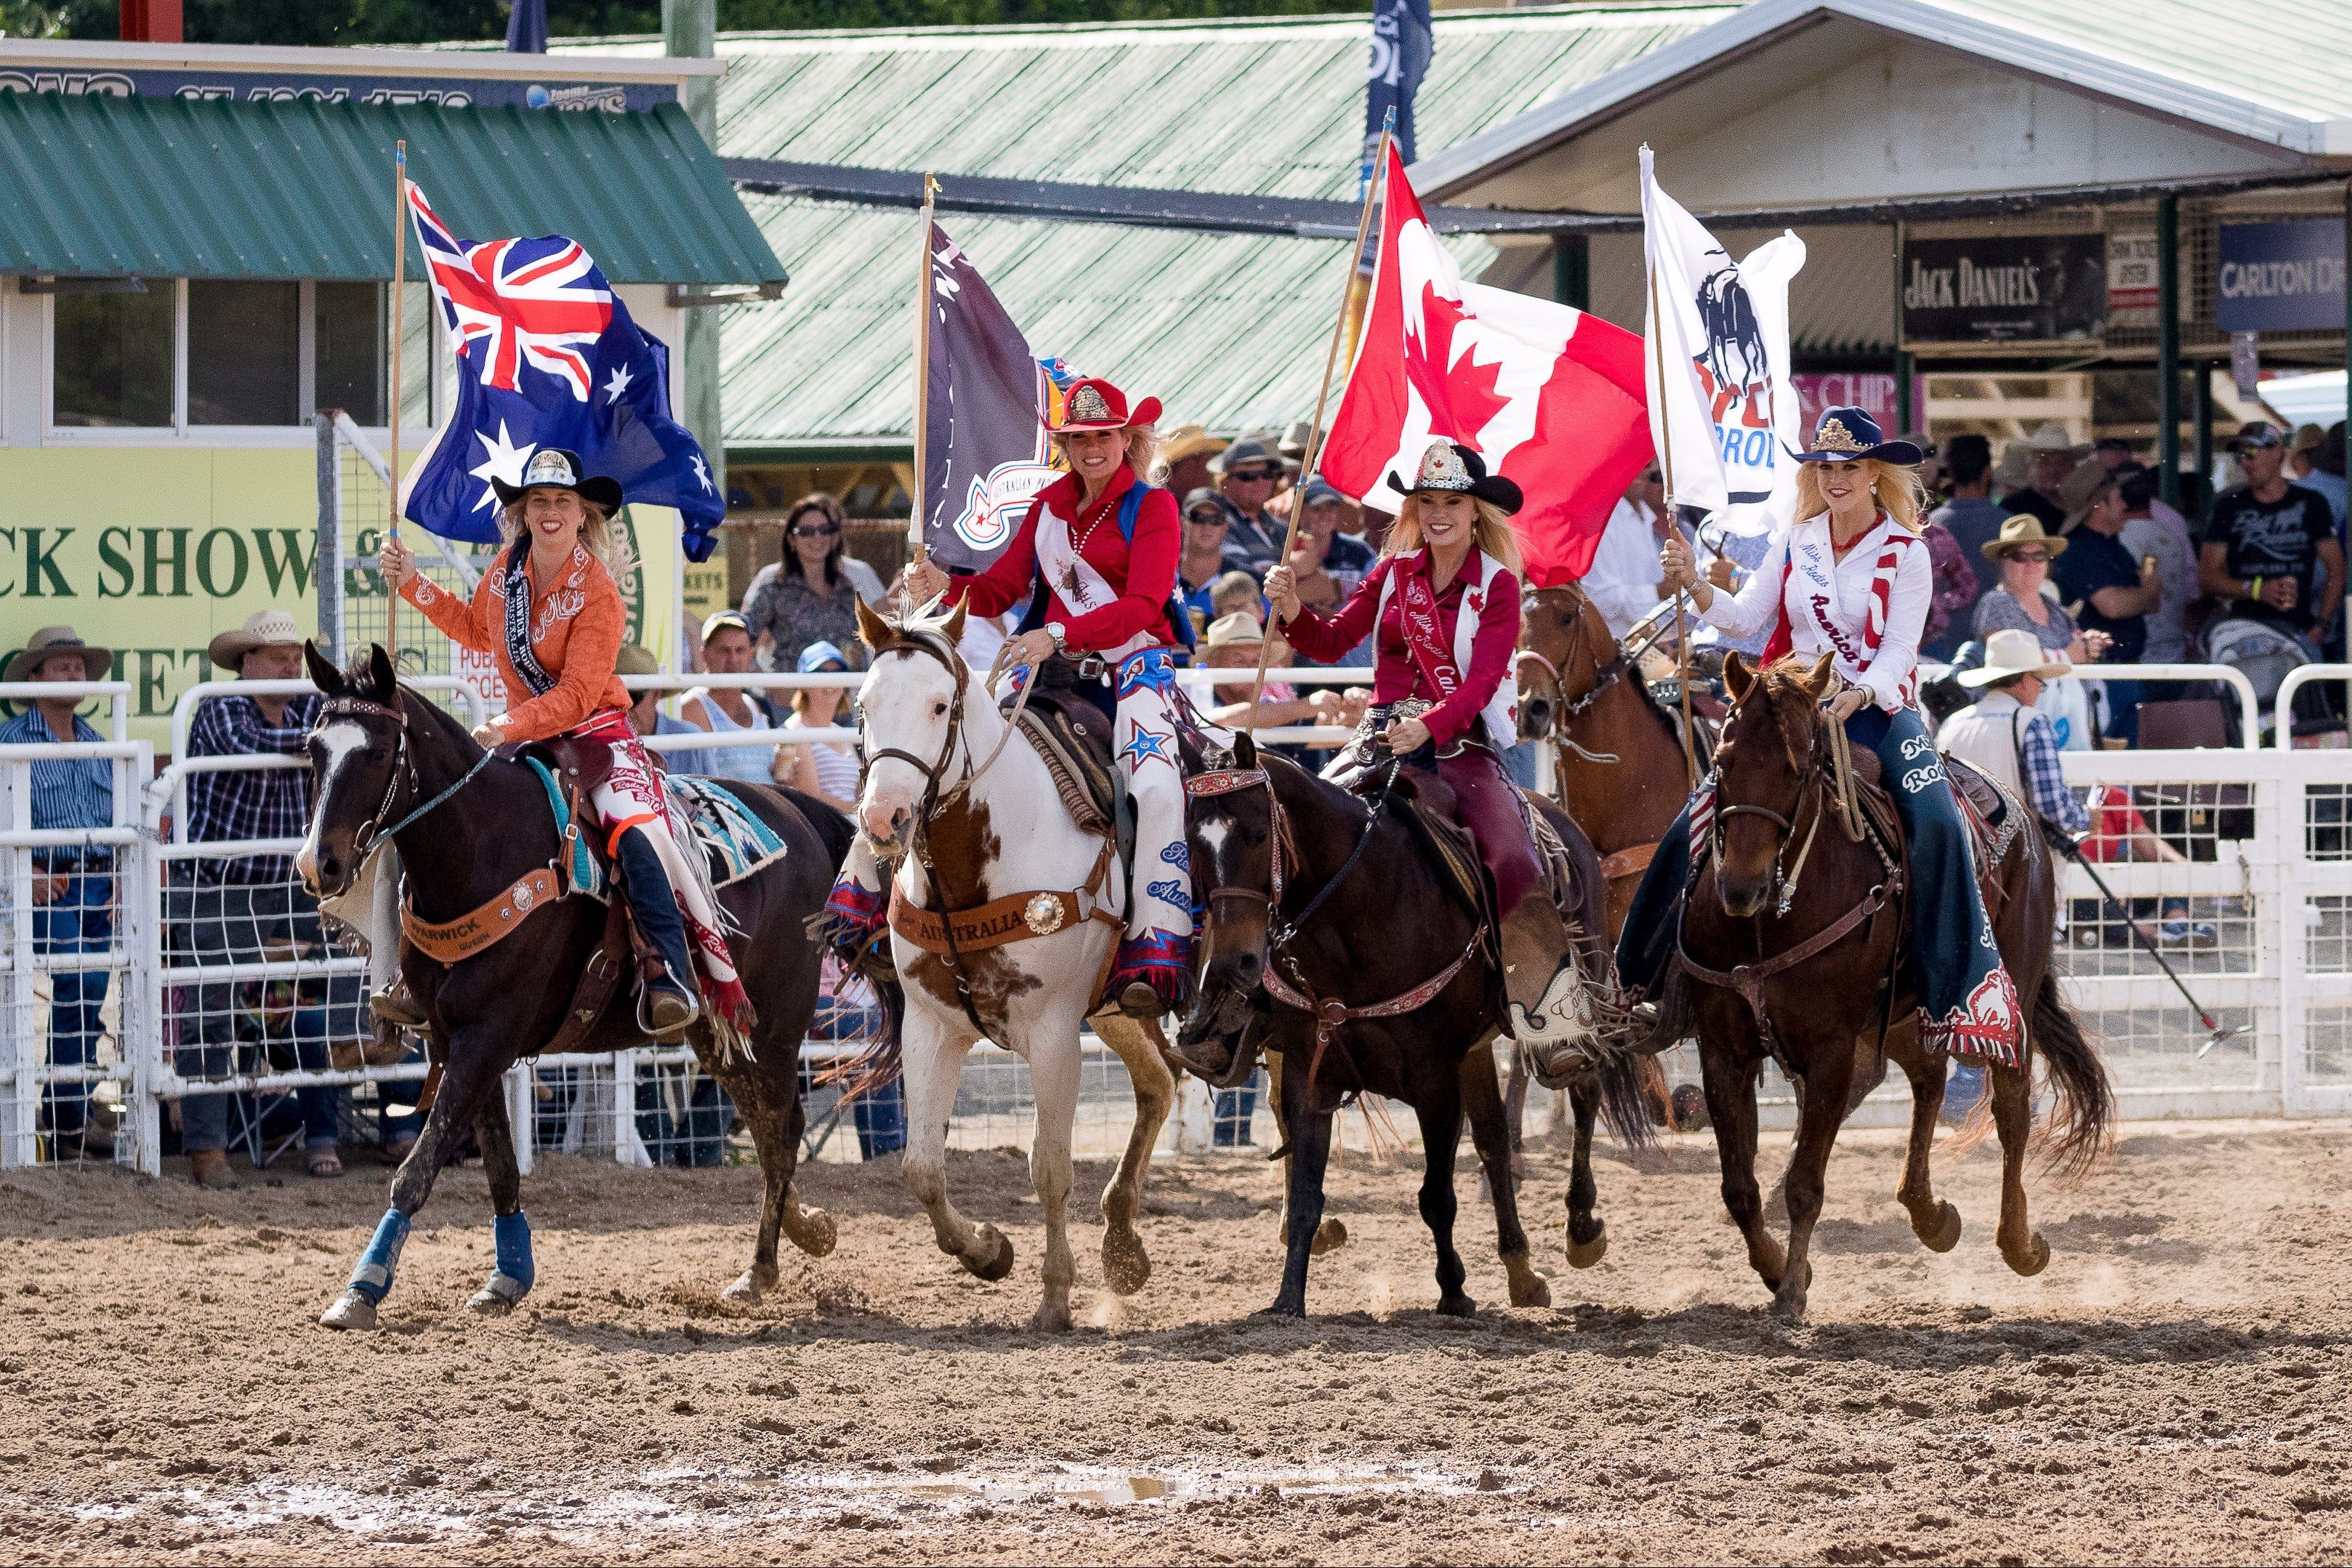 Warwick Rodeo National APRA National Finals and Warwick Gold Cup Campdraft - Restaurant Find